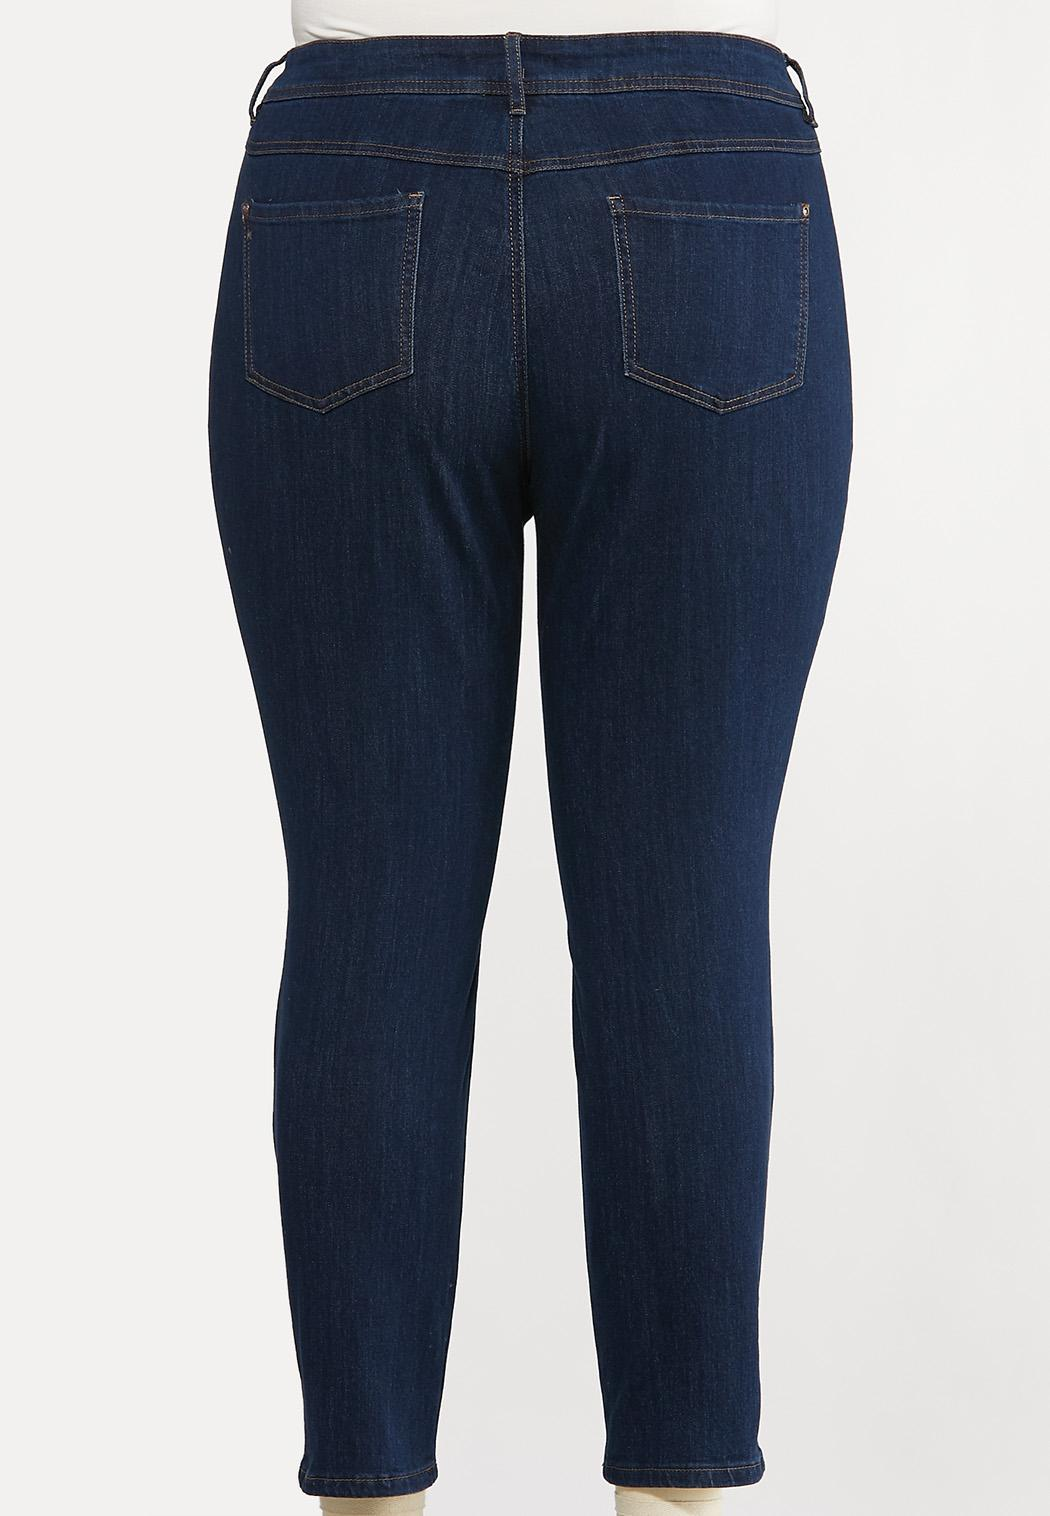 Plus Extended Curvy Skinny Jeans (Item #44079501)